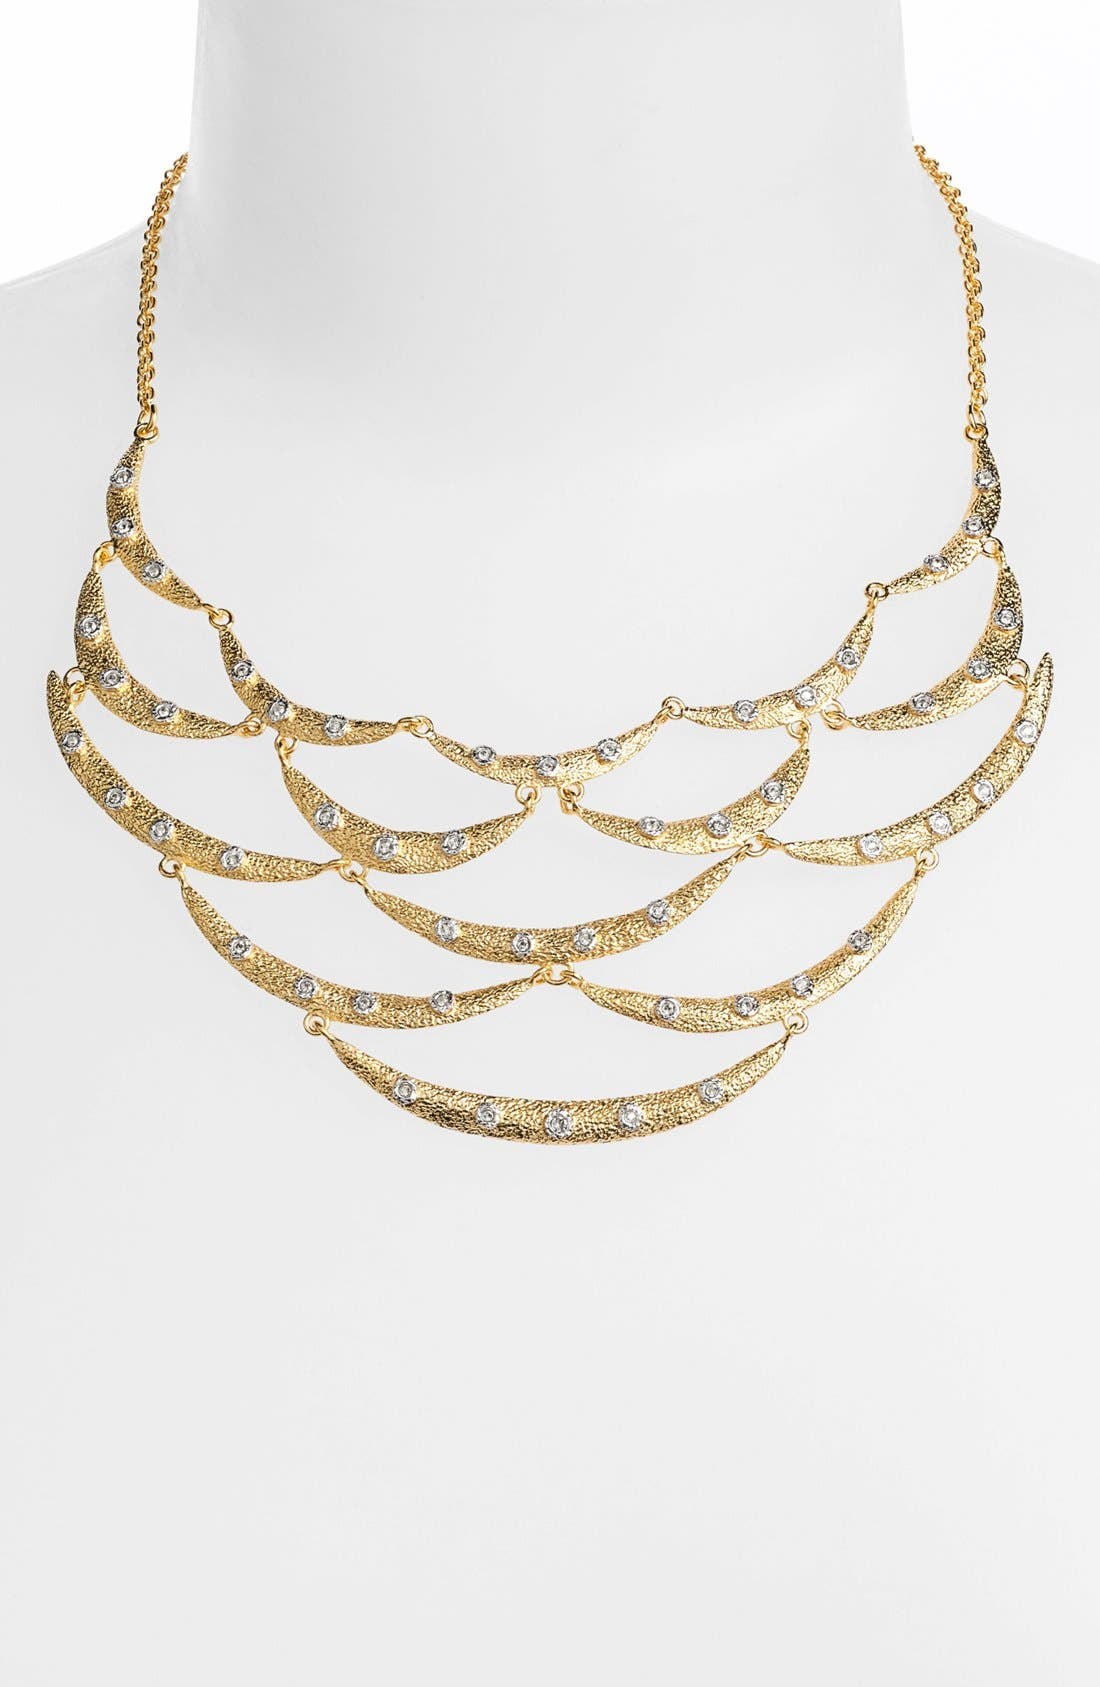 Alternate Image 1 Selected - Alexis Bittar 'Elements' Articulated Bib Necklace